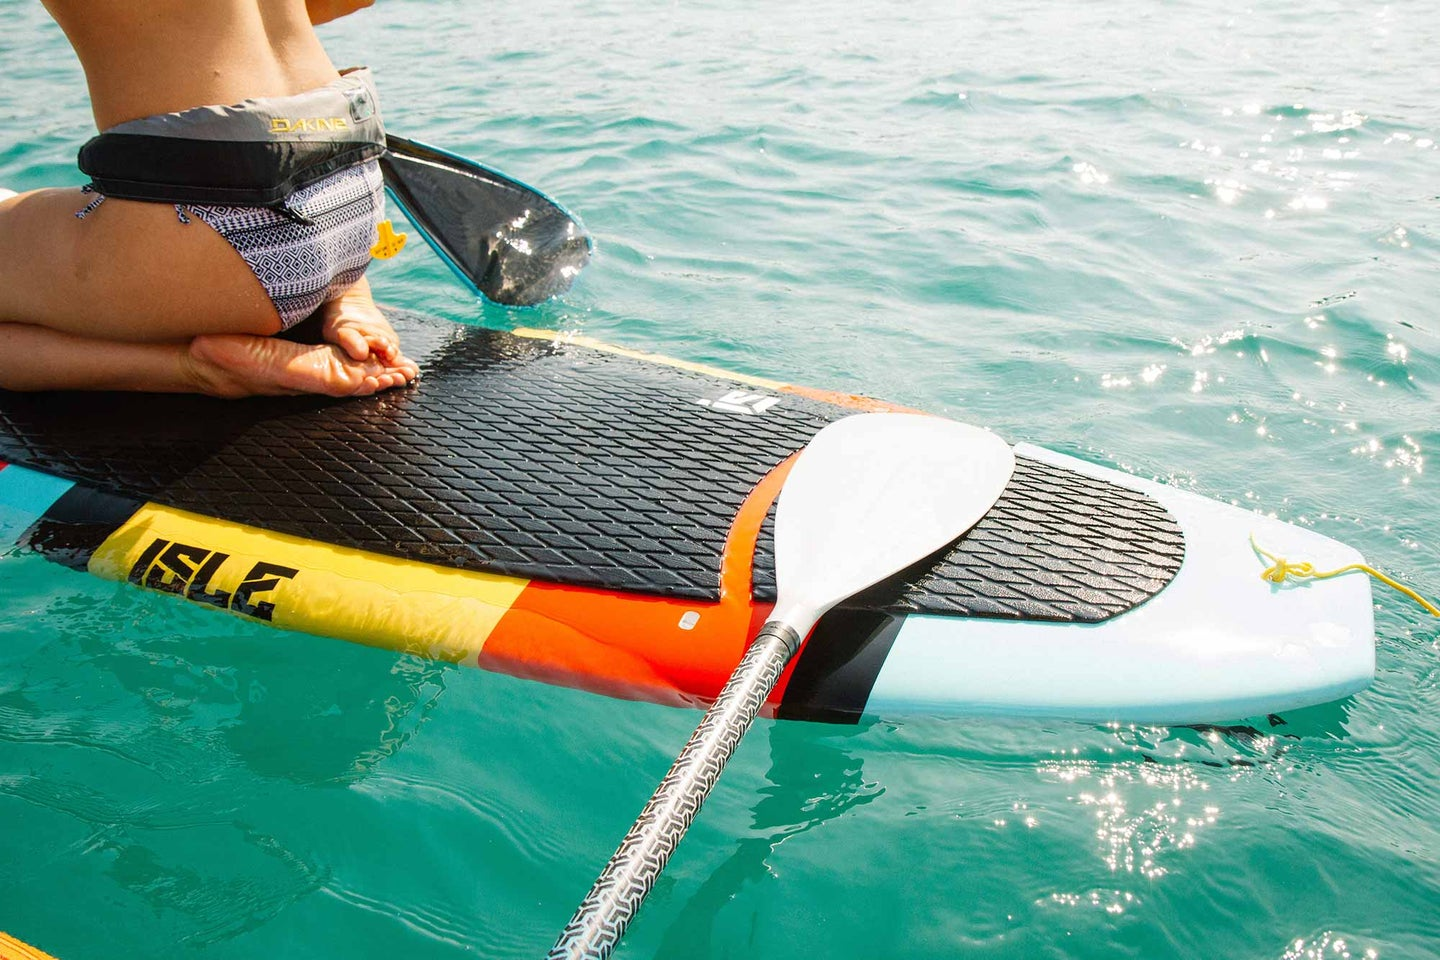 Closeup of paddle board in the water